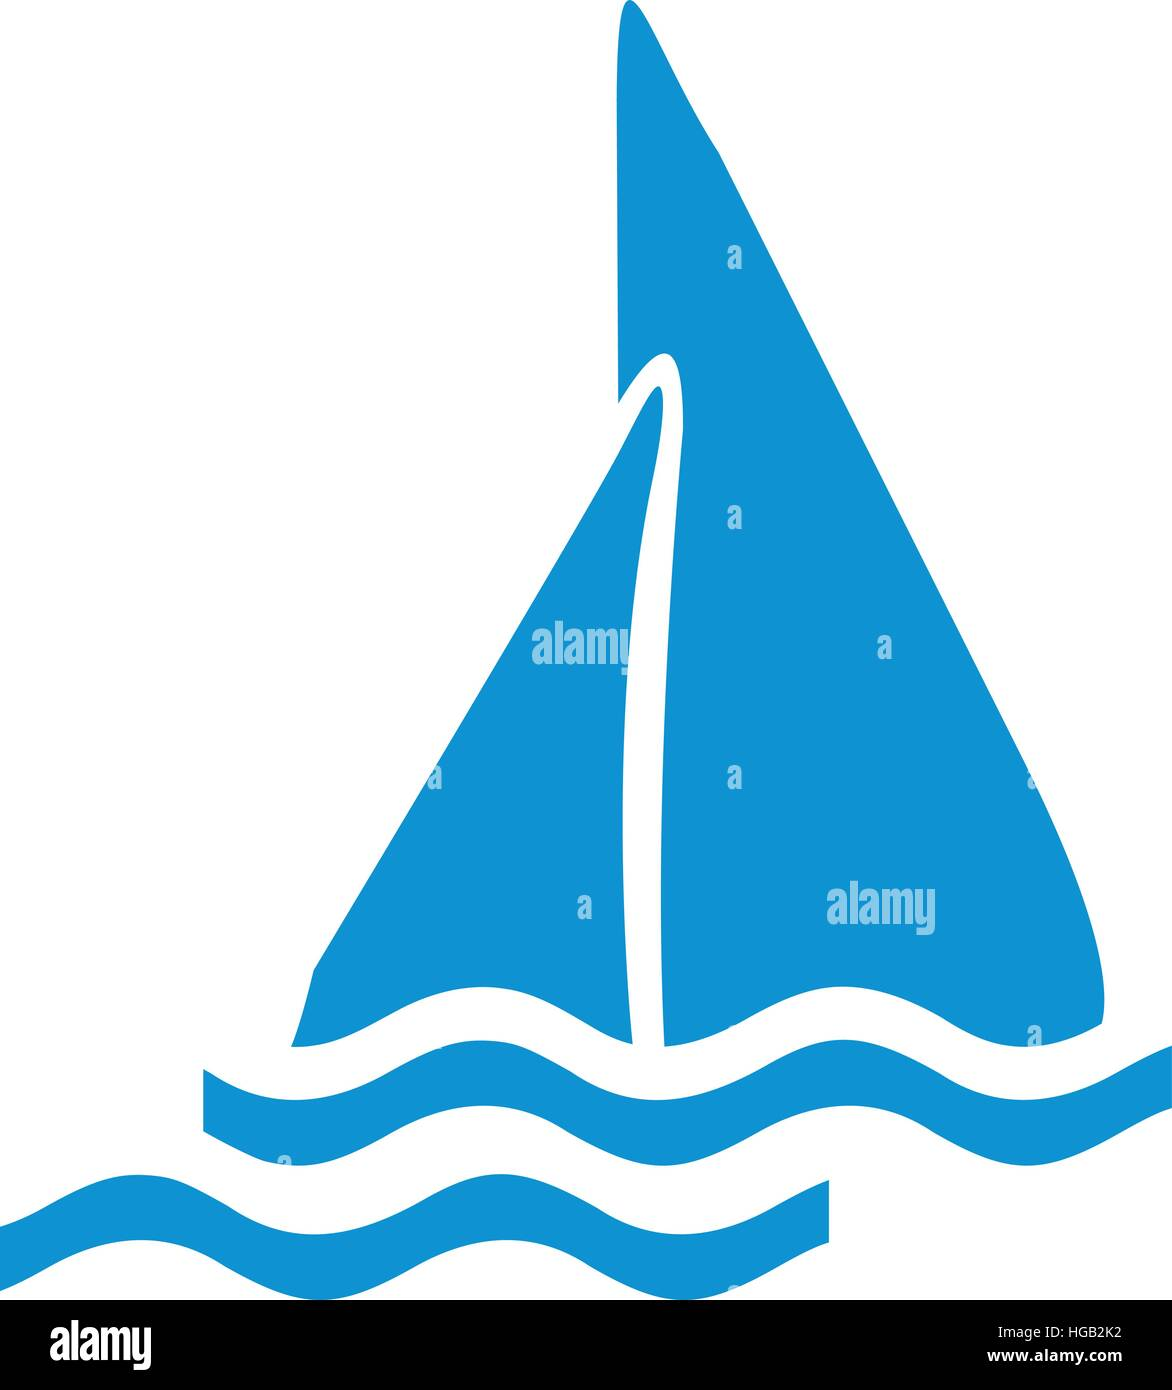 Icon of a sailing boat - Stock Image